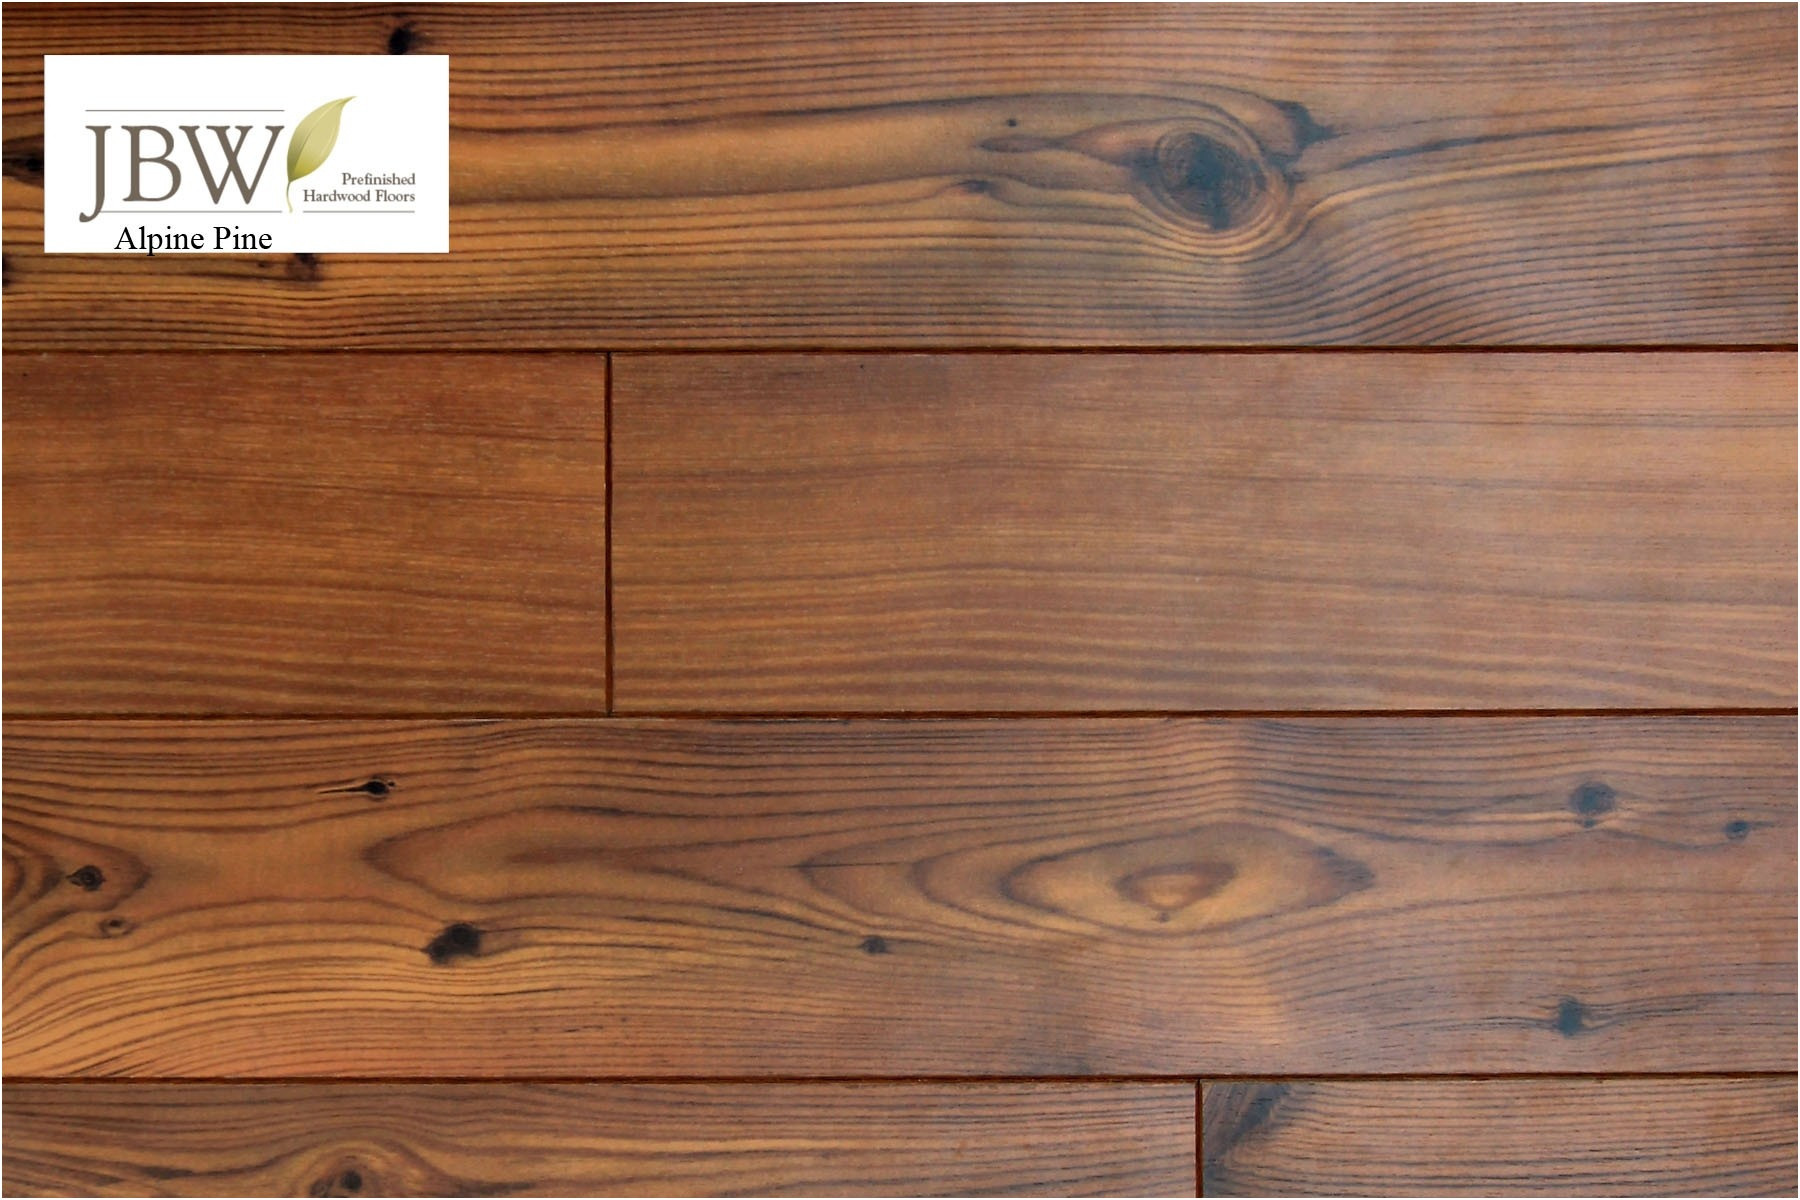 wholesale engineered hardwood flooring of variable width engineered hardwood flooring collection chaparral intended for related post